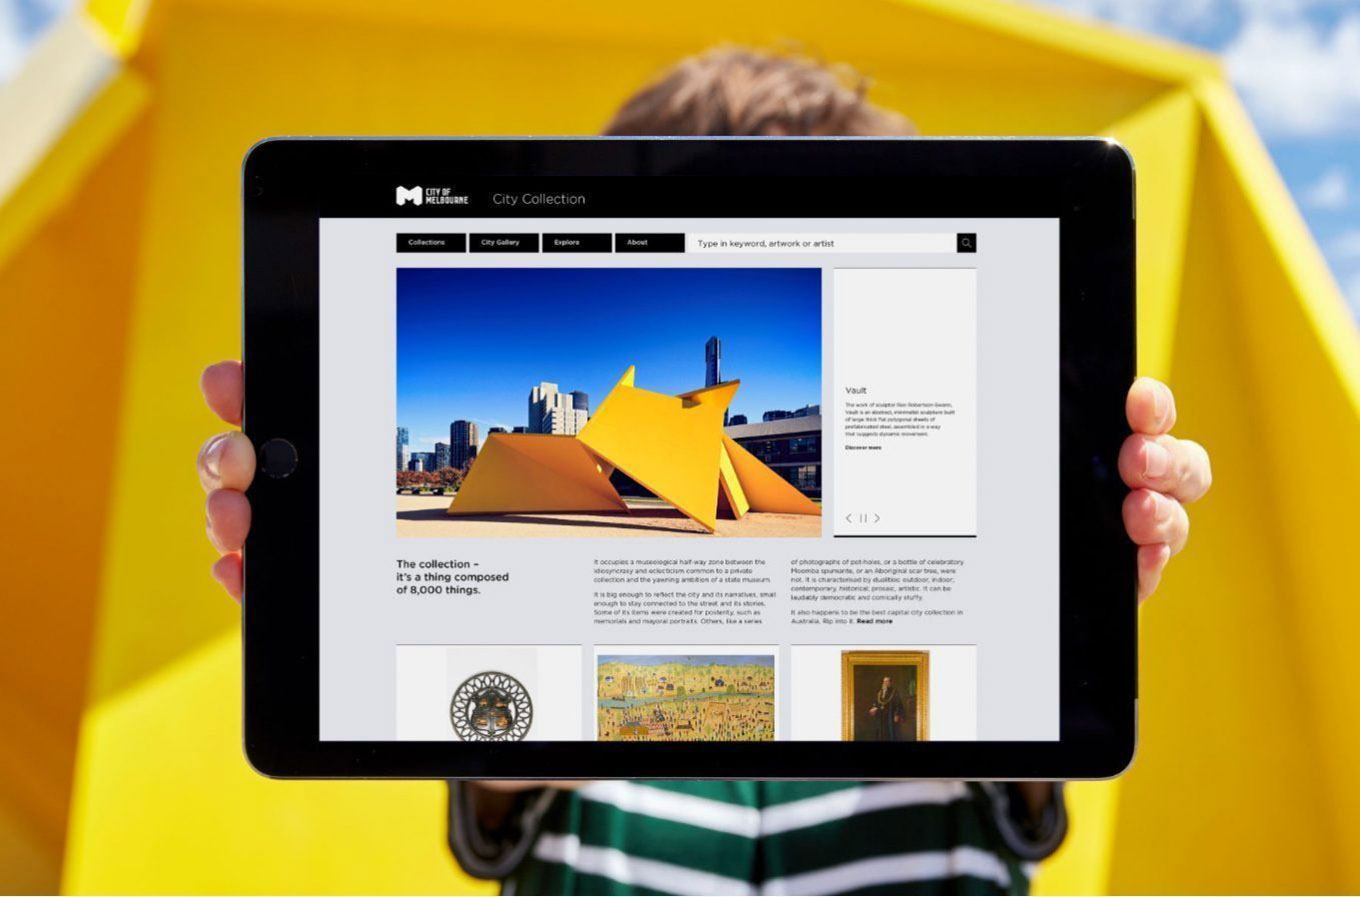 City Collection interface design shown on iPad